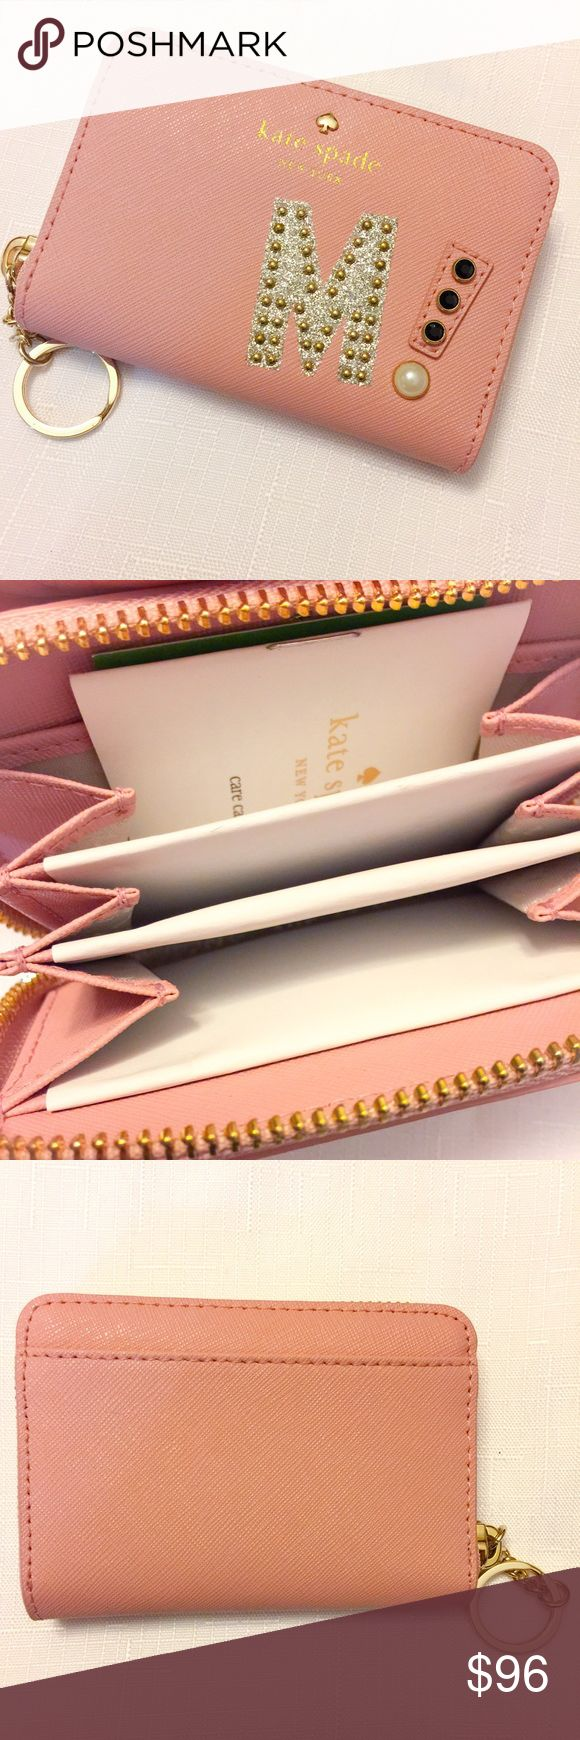 "New Kate Spade Hartley Lane Cassidy Letter Wallet! New Kate Spade Hartley Lane Cassidy Letter Wallet! Fun and adorable zip around mini wallet in the beautiful pink bonnet shade. This mini wallet is made of Saffiano leather and it provides an exterior slip pocket and three interior zip pockets. Measures 4.5"" L X 1"" W X 3""H kate spade Bags Wallets"